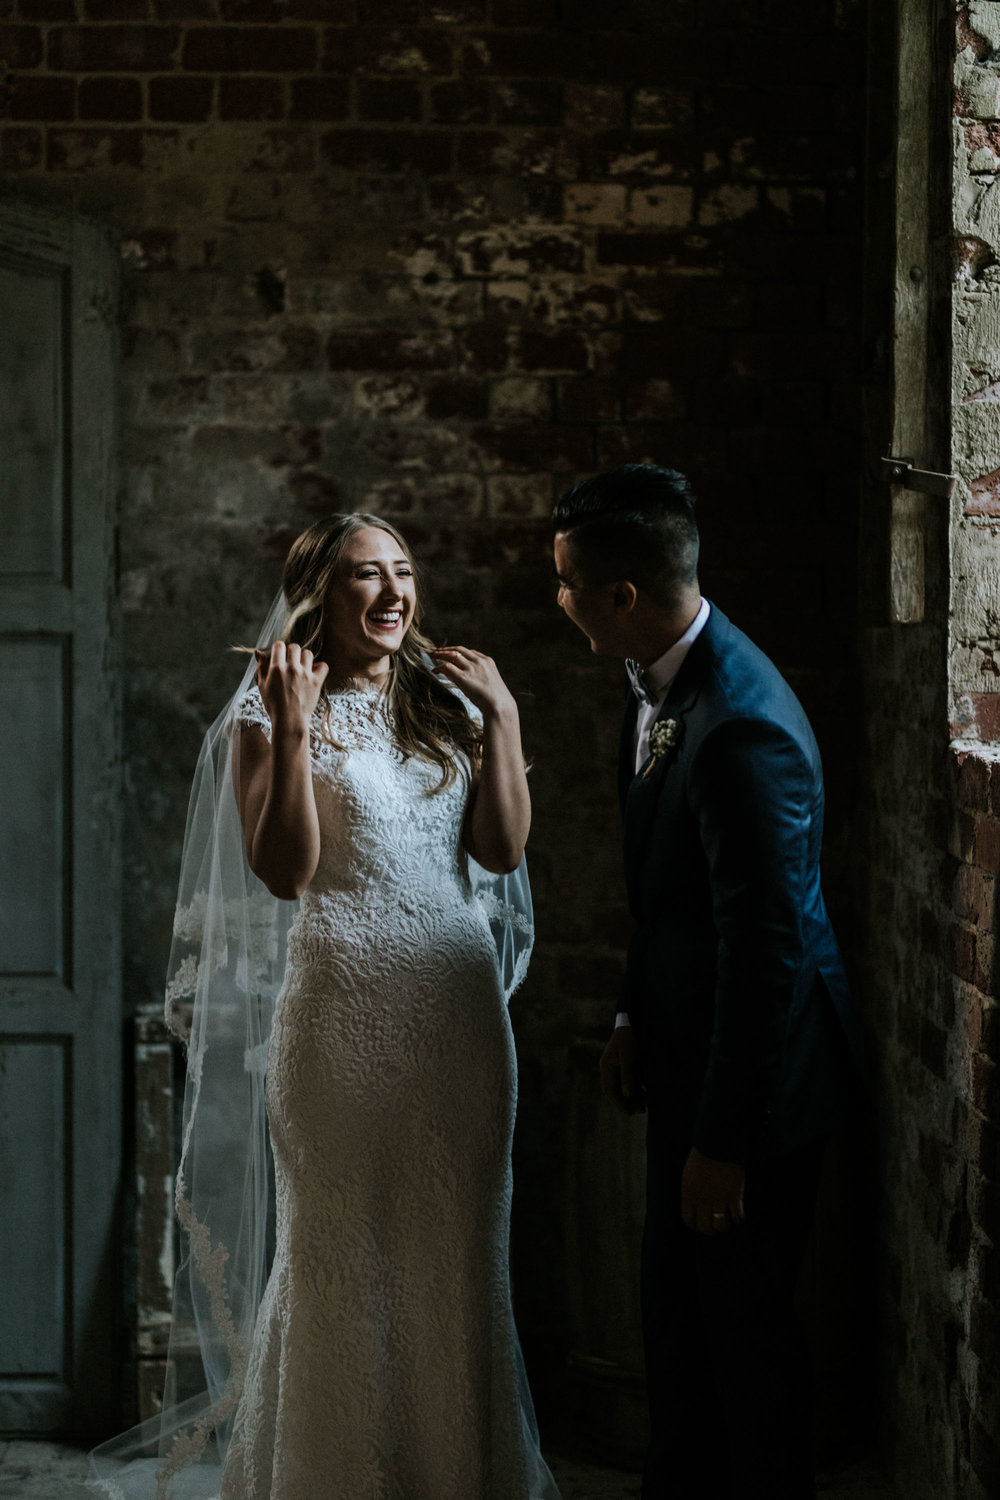 Lanita + Michael's wedding at Euroa Butter Factory